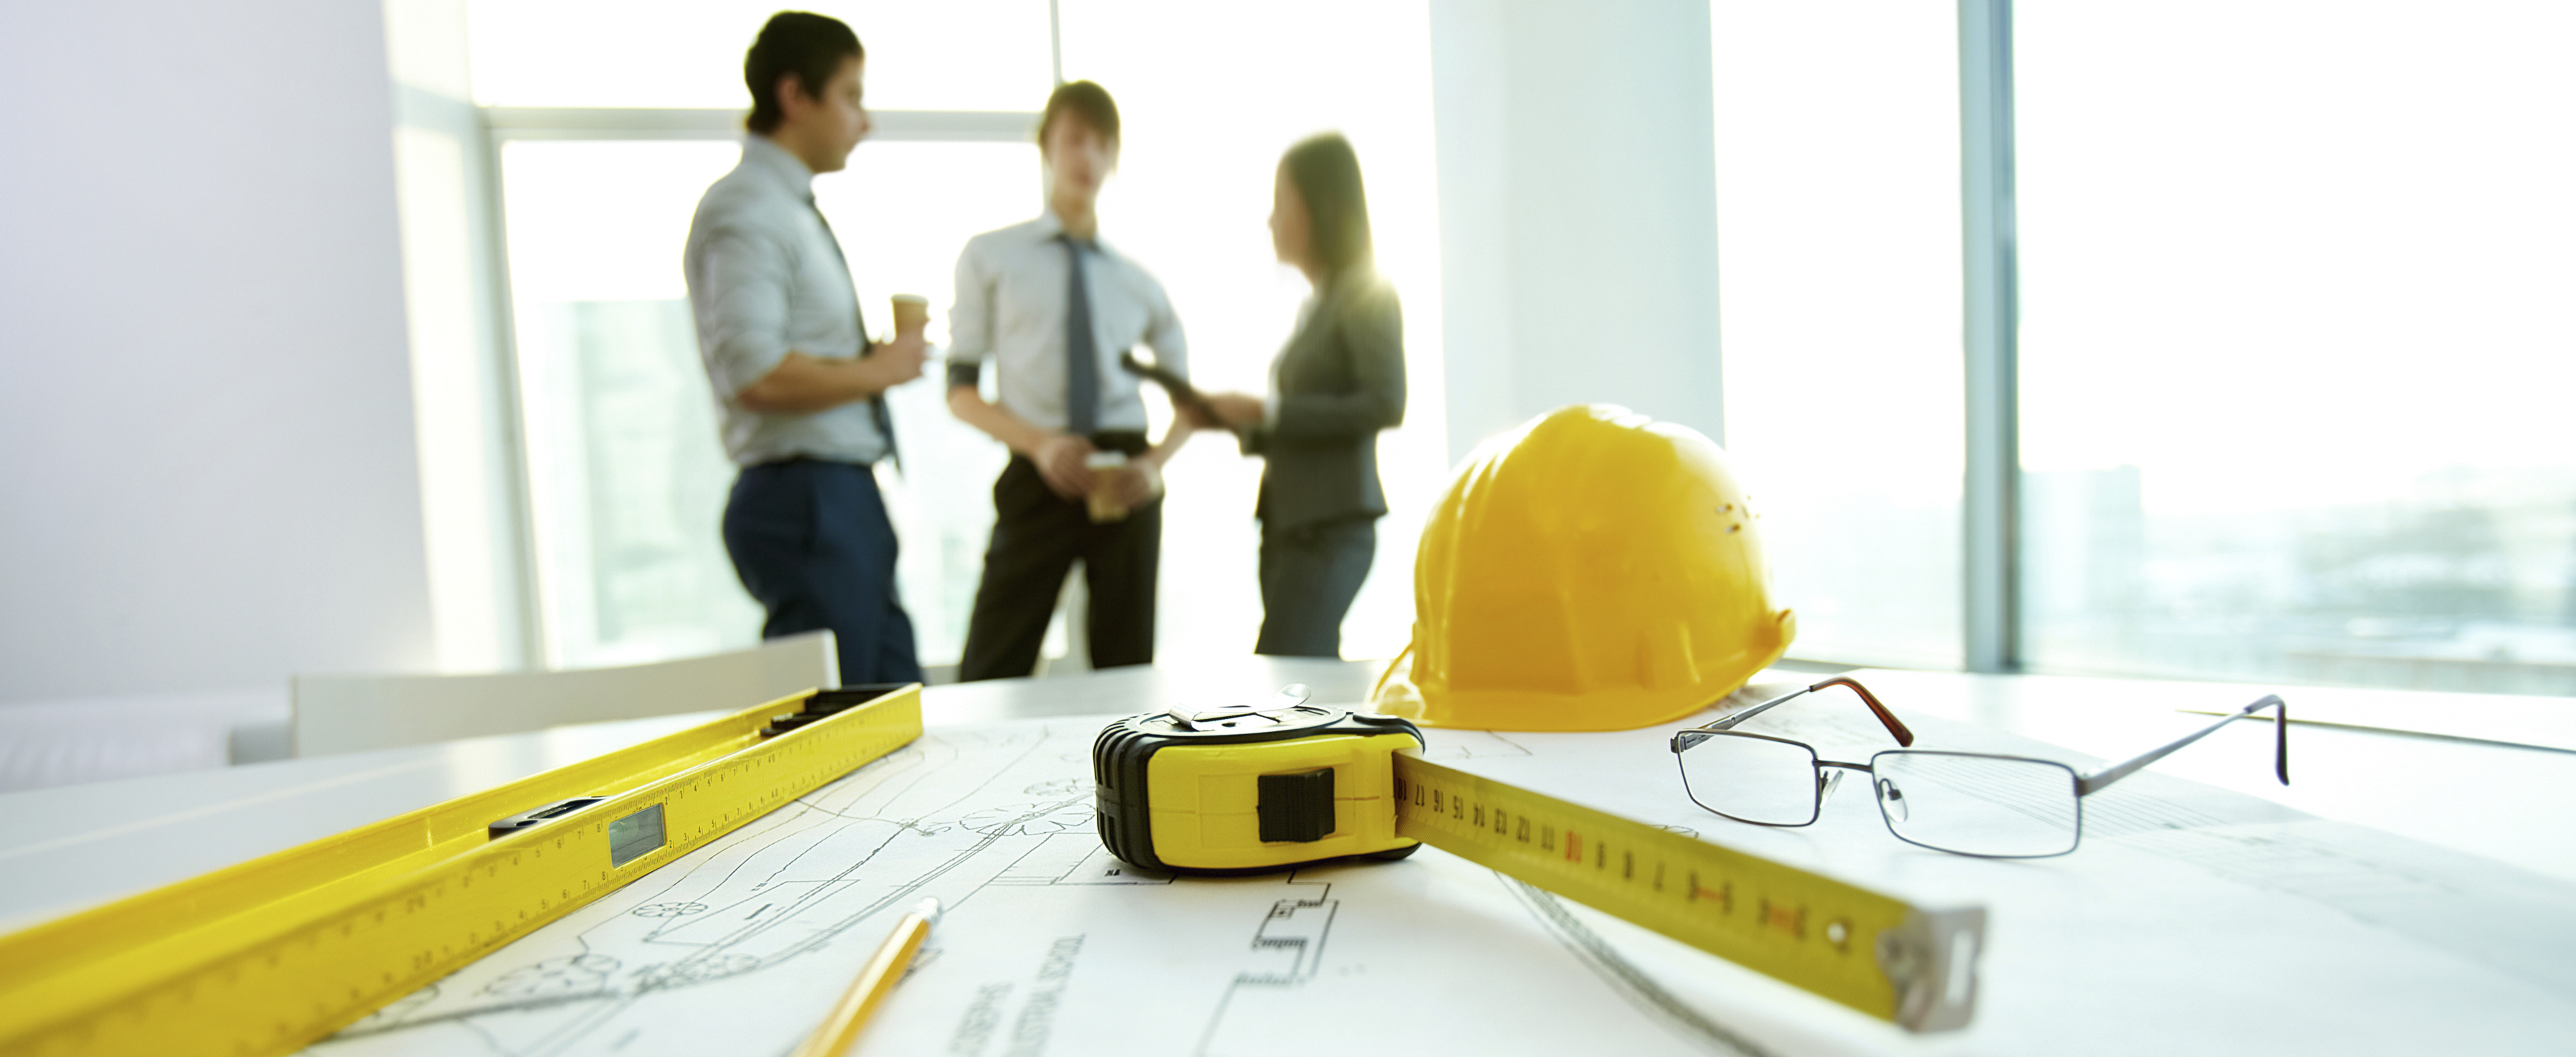 Construction Estimating and Bidding